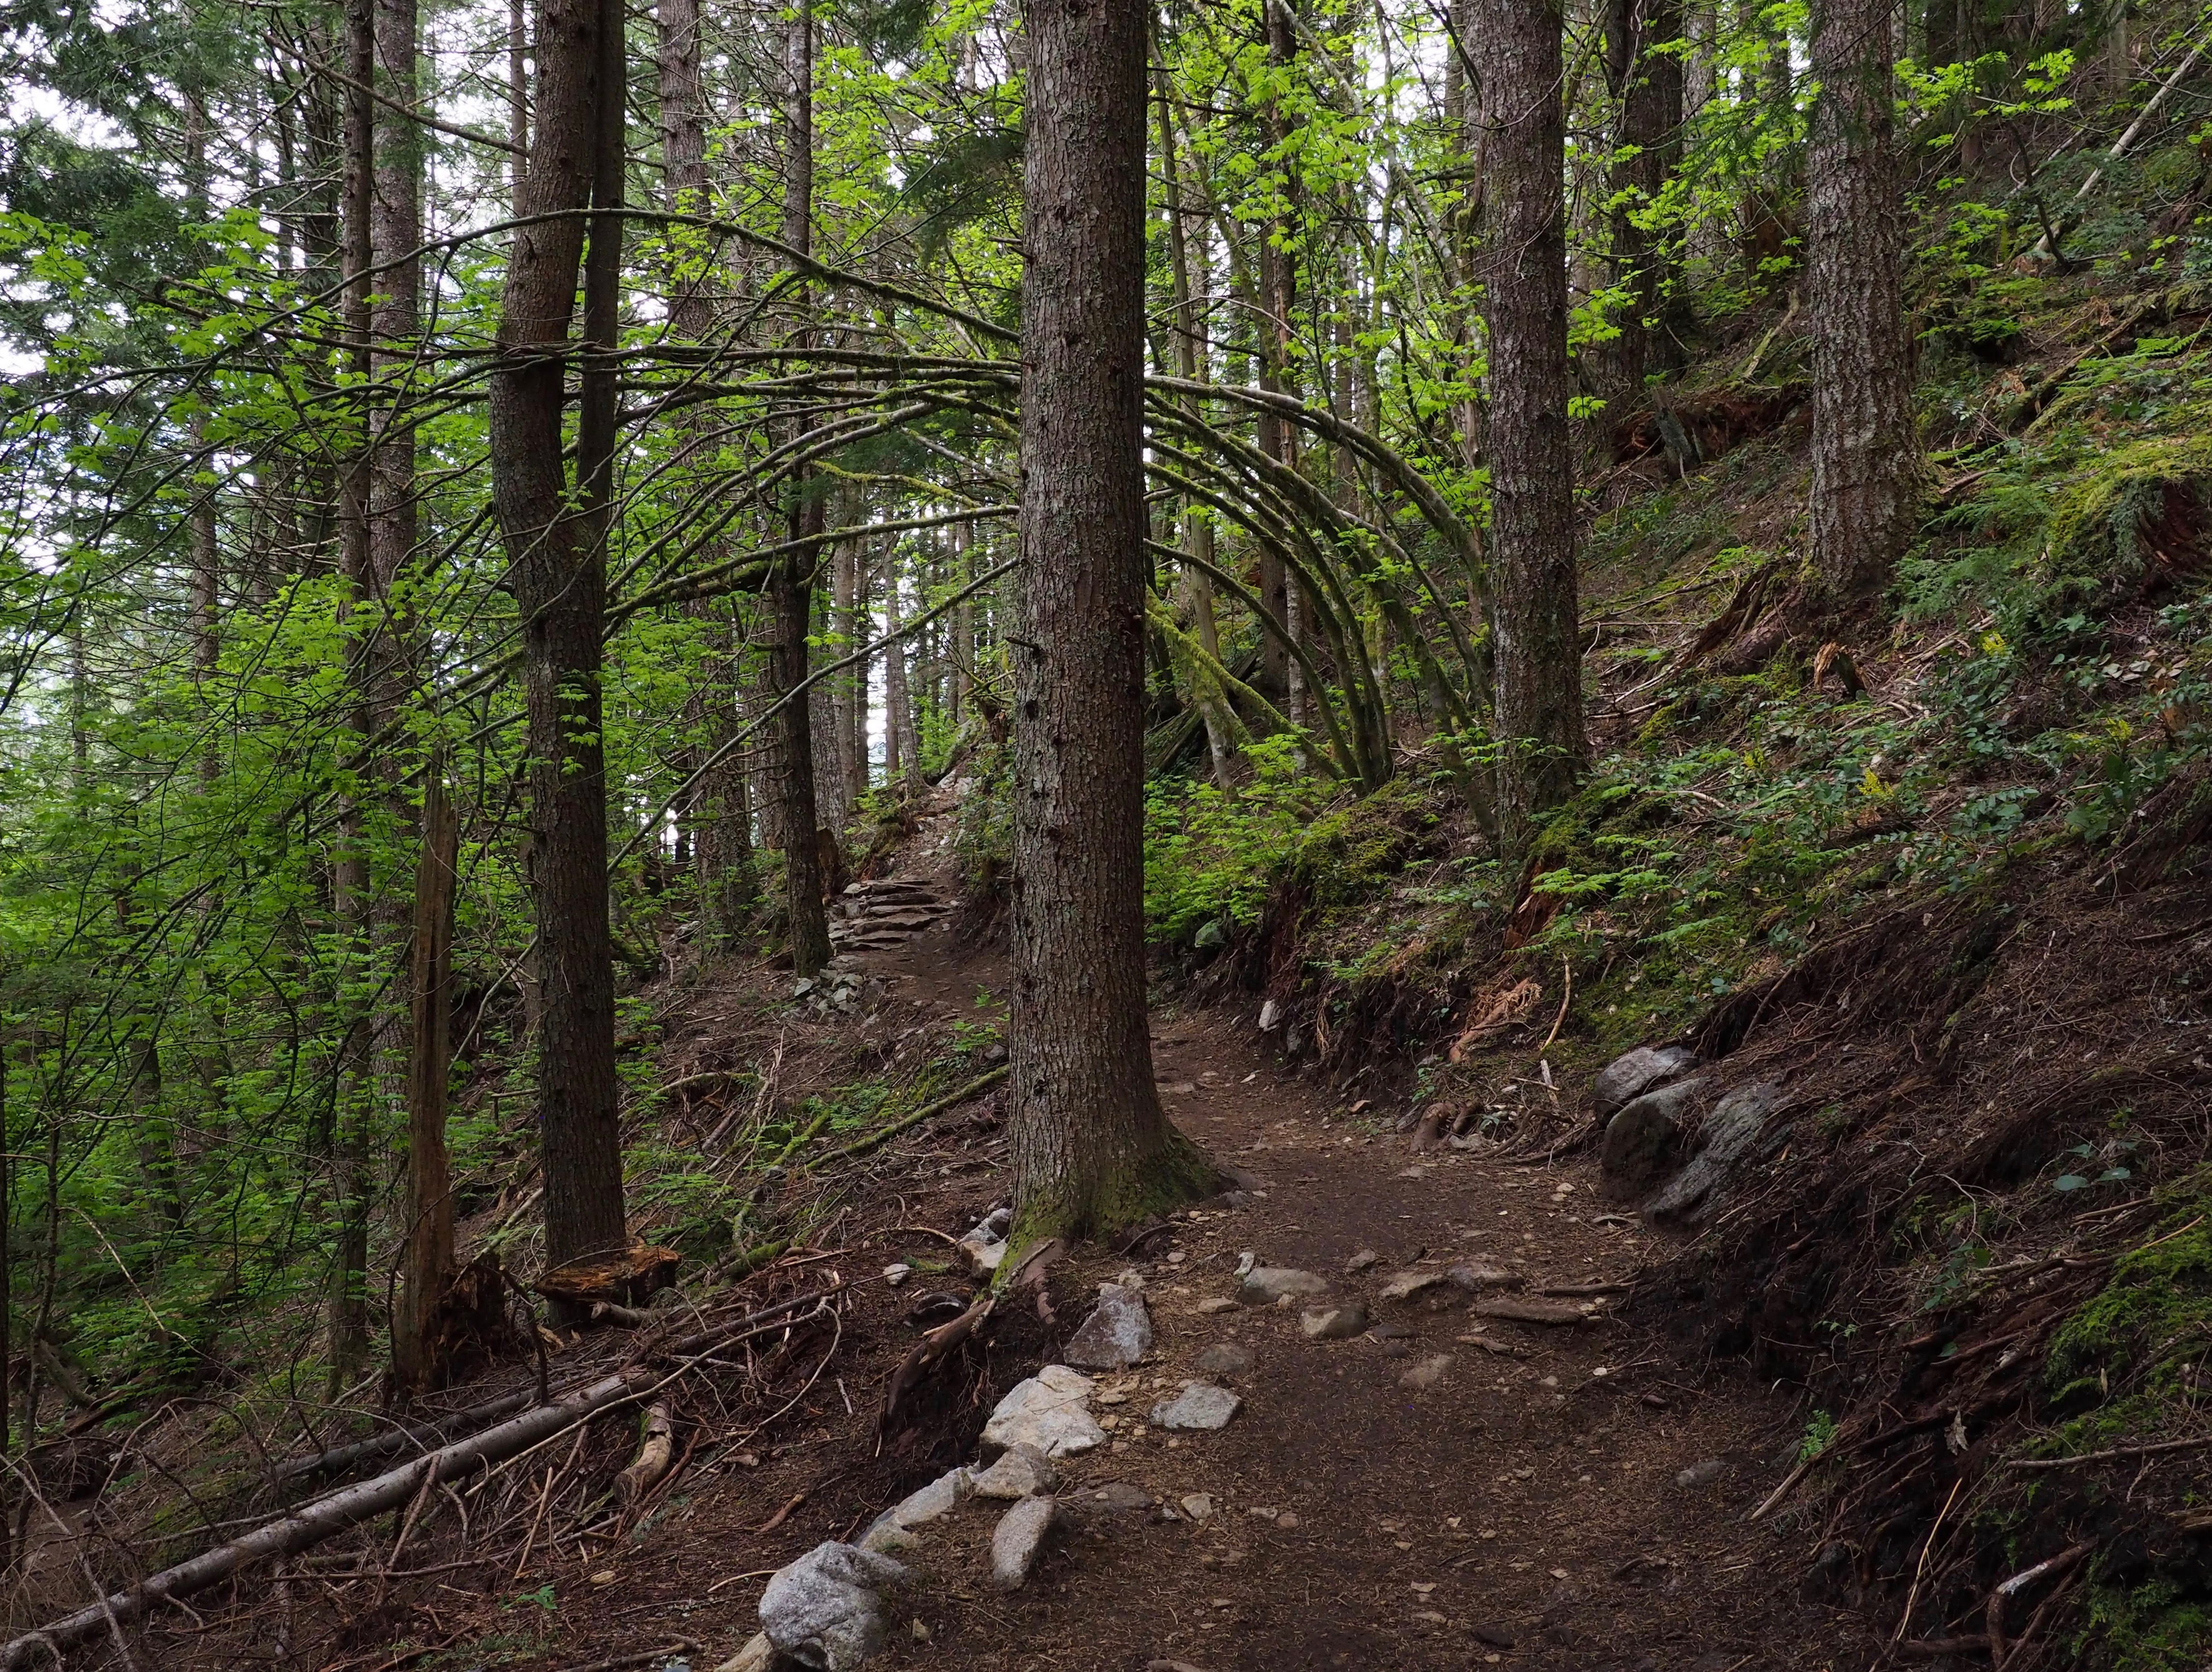 The trail climbs through mostly coniferous forest regrown from Dirty Harry's deeds of decades ago. Dirty Harry's Peak Trail, May 19, 2019.